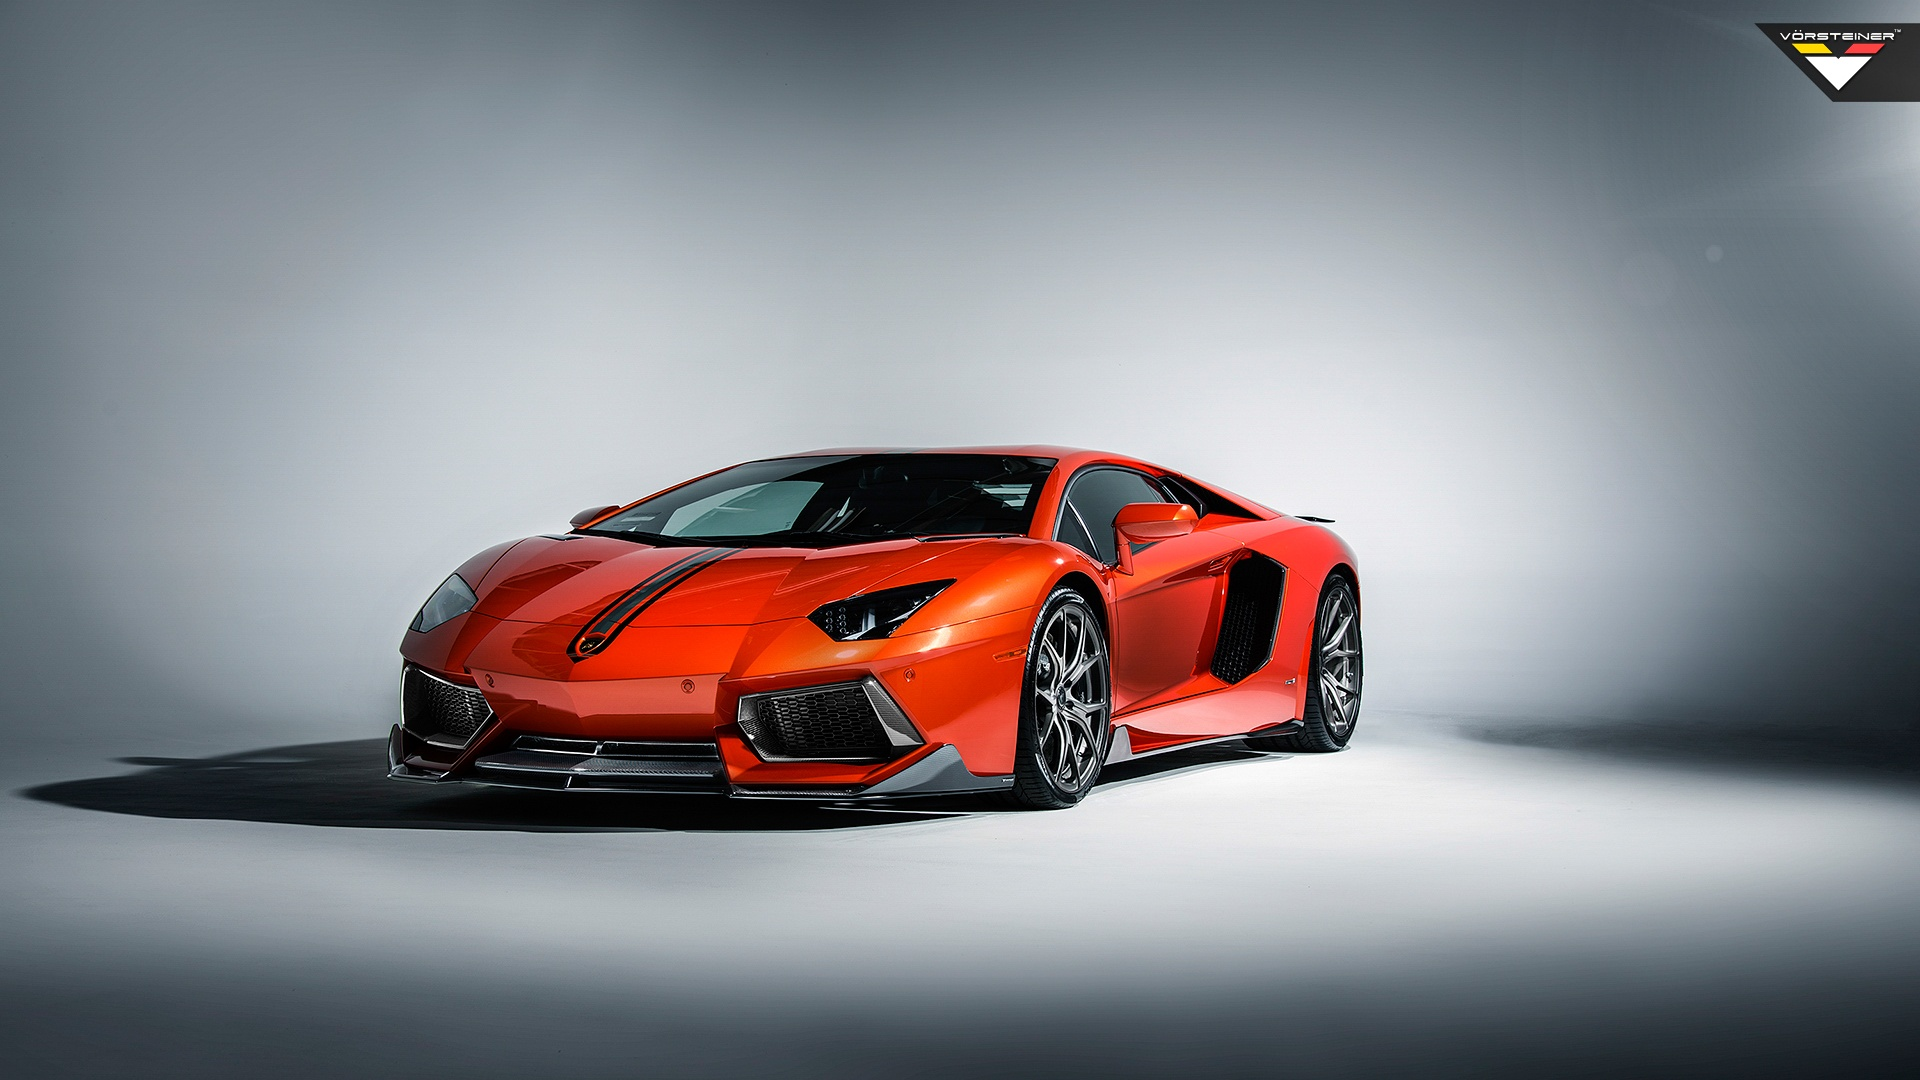 25 exotic awesome car wallpapers hd edition stugon - Cars hd wallpapers for laptop ...